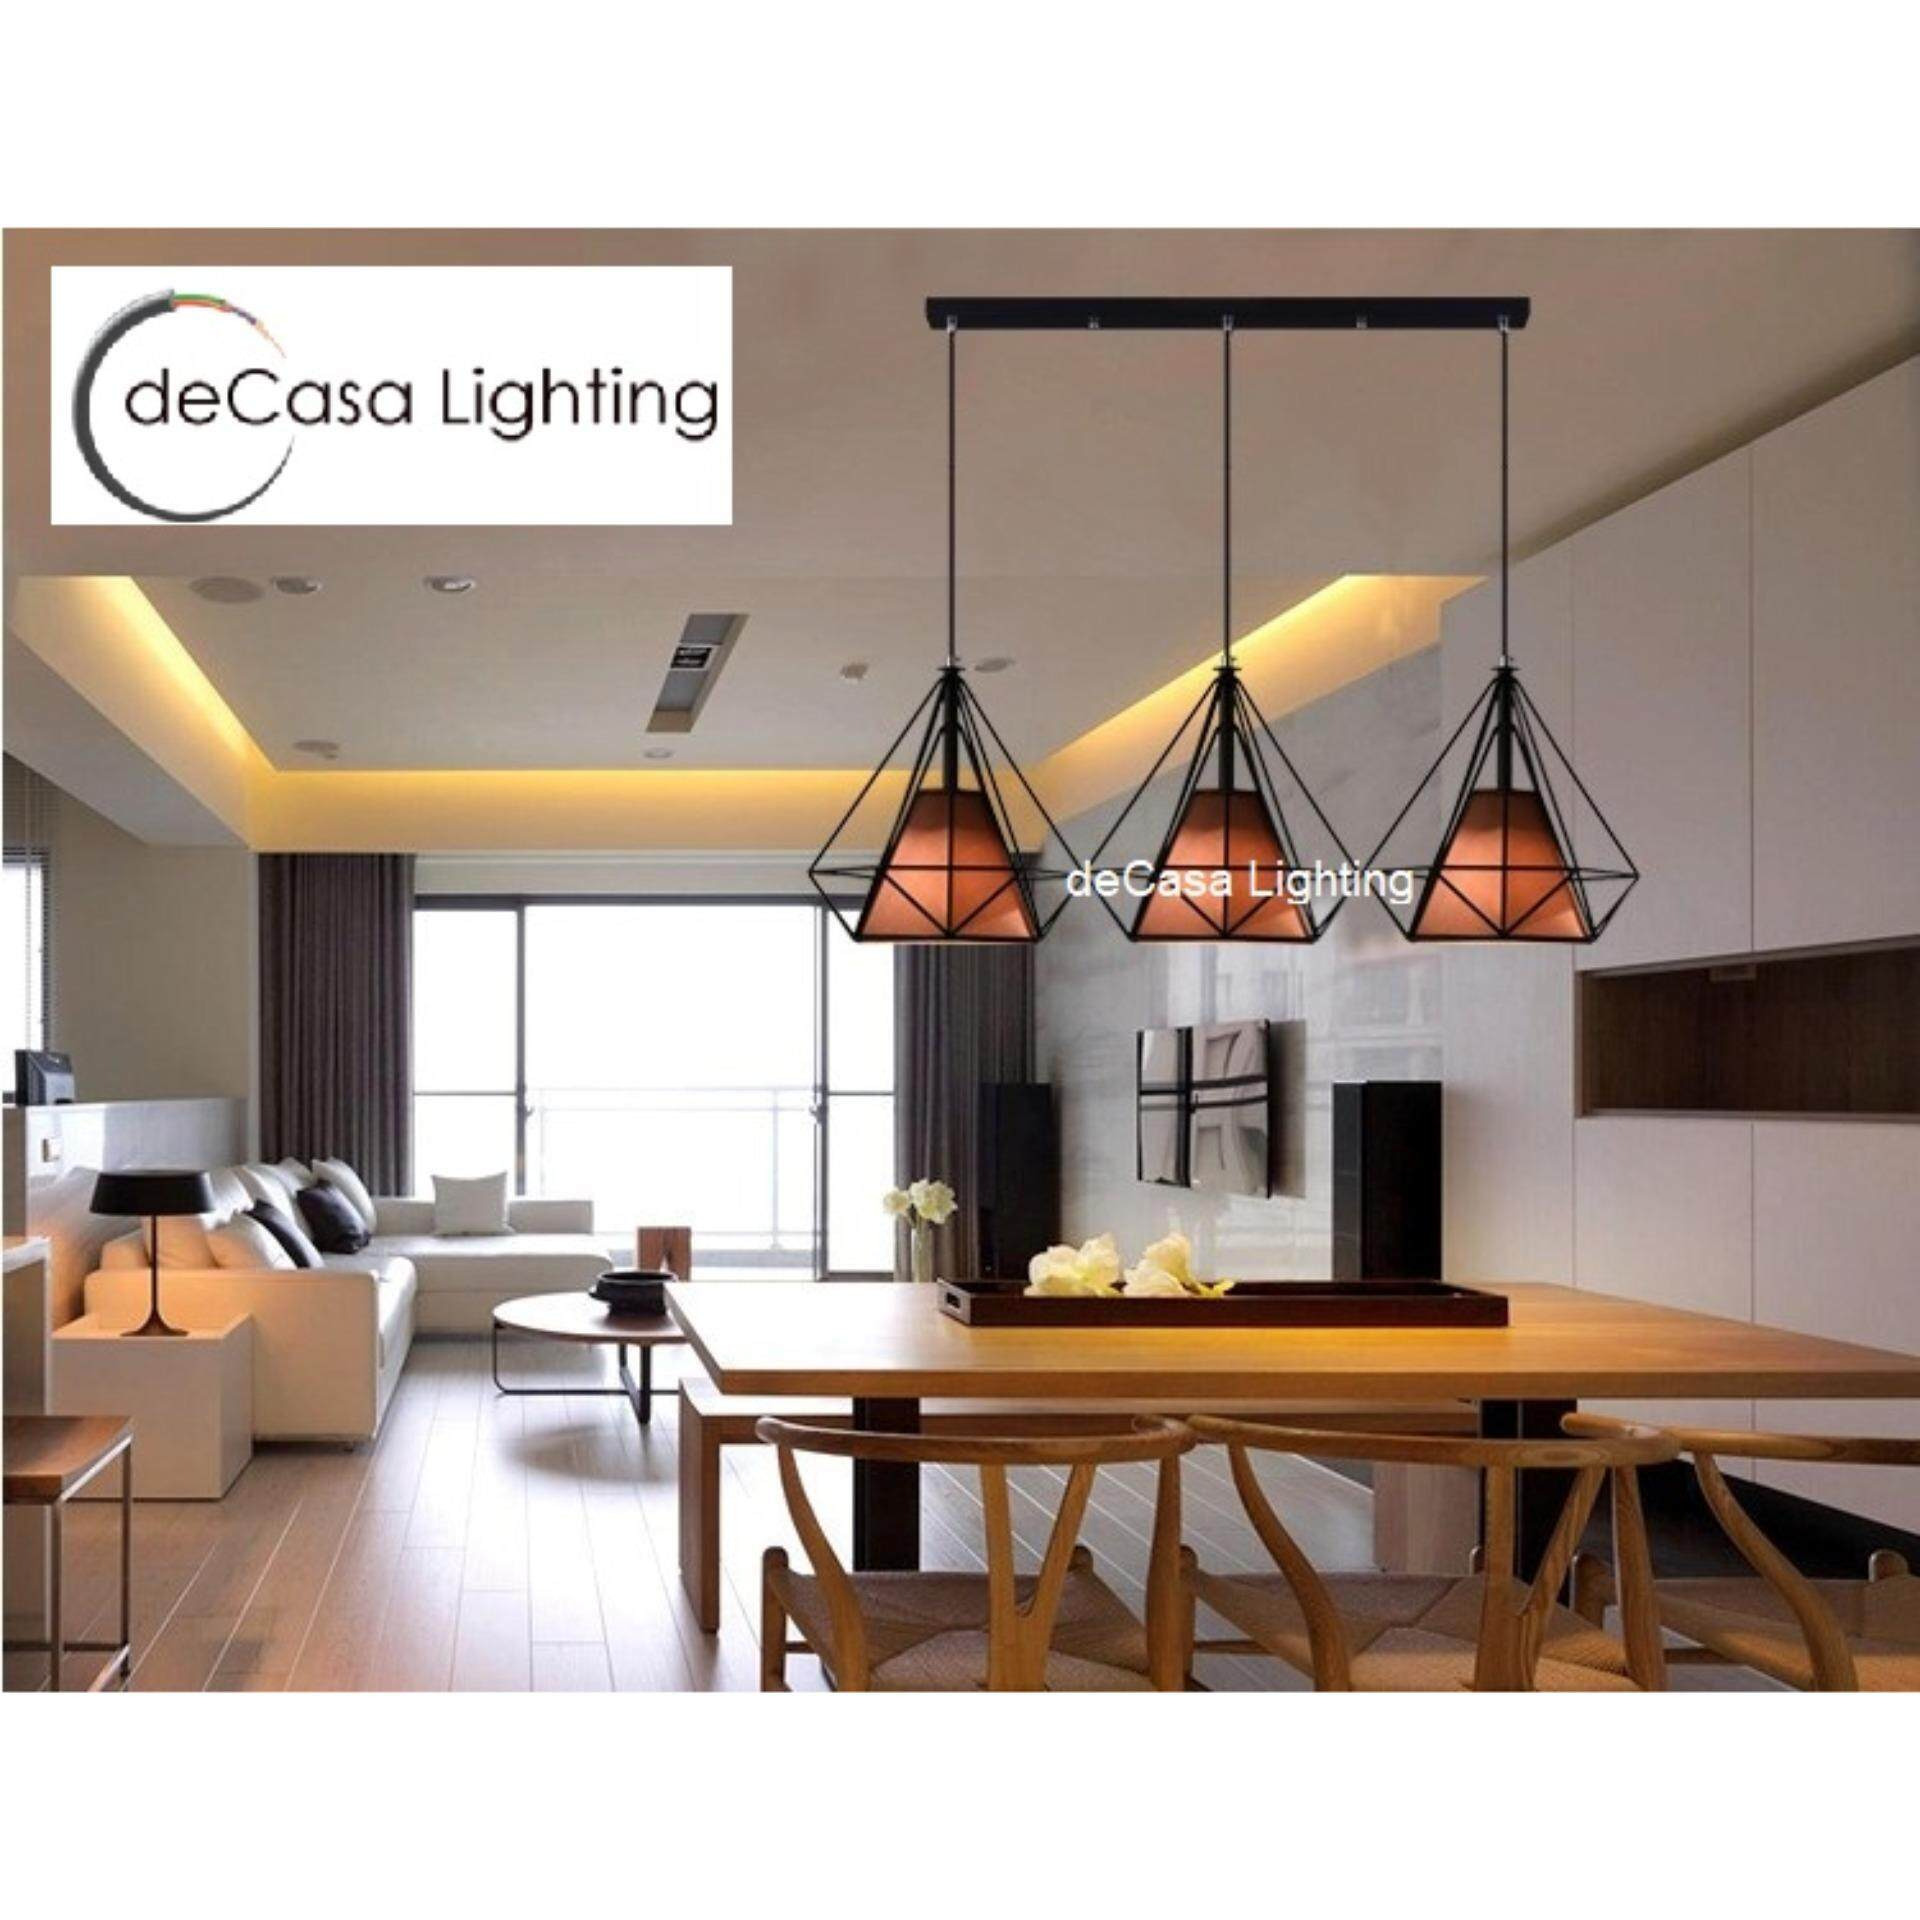 Decorative Hanging Light Brown Colour Ceiling Light DECASA Ceiling Light Long Based Hanging Light LY